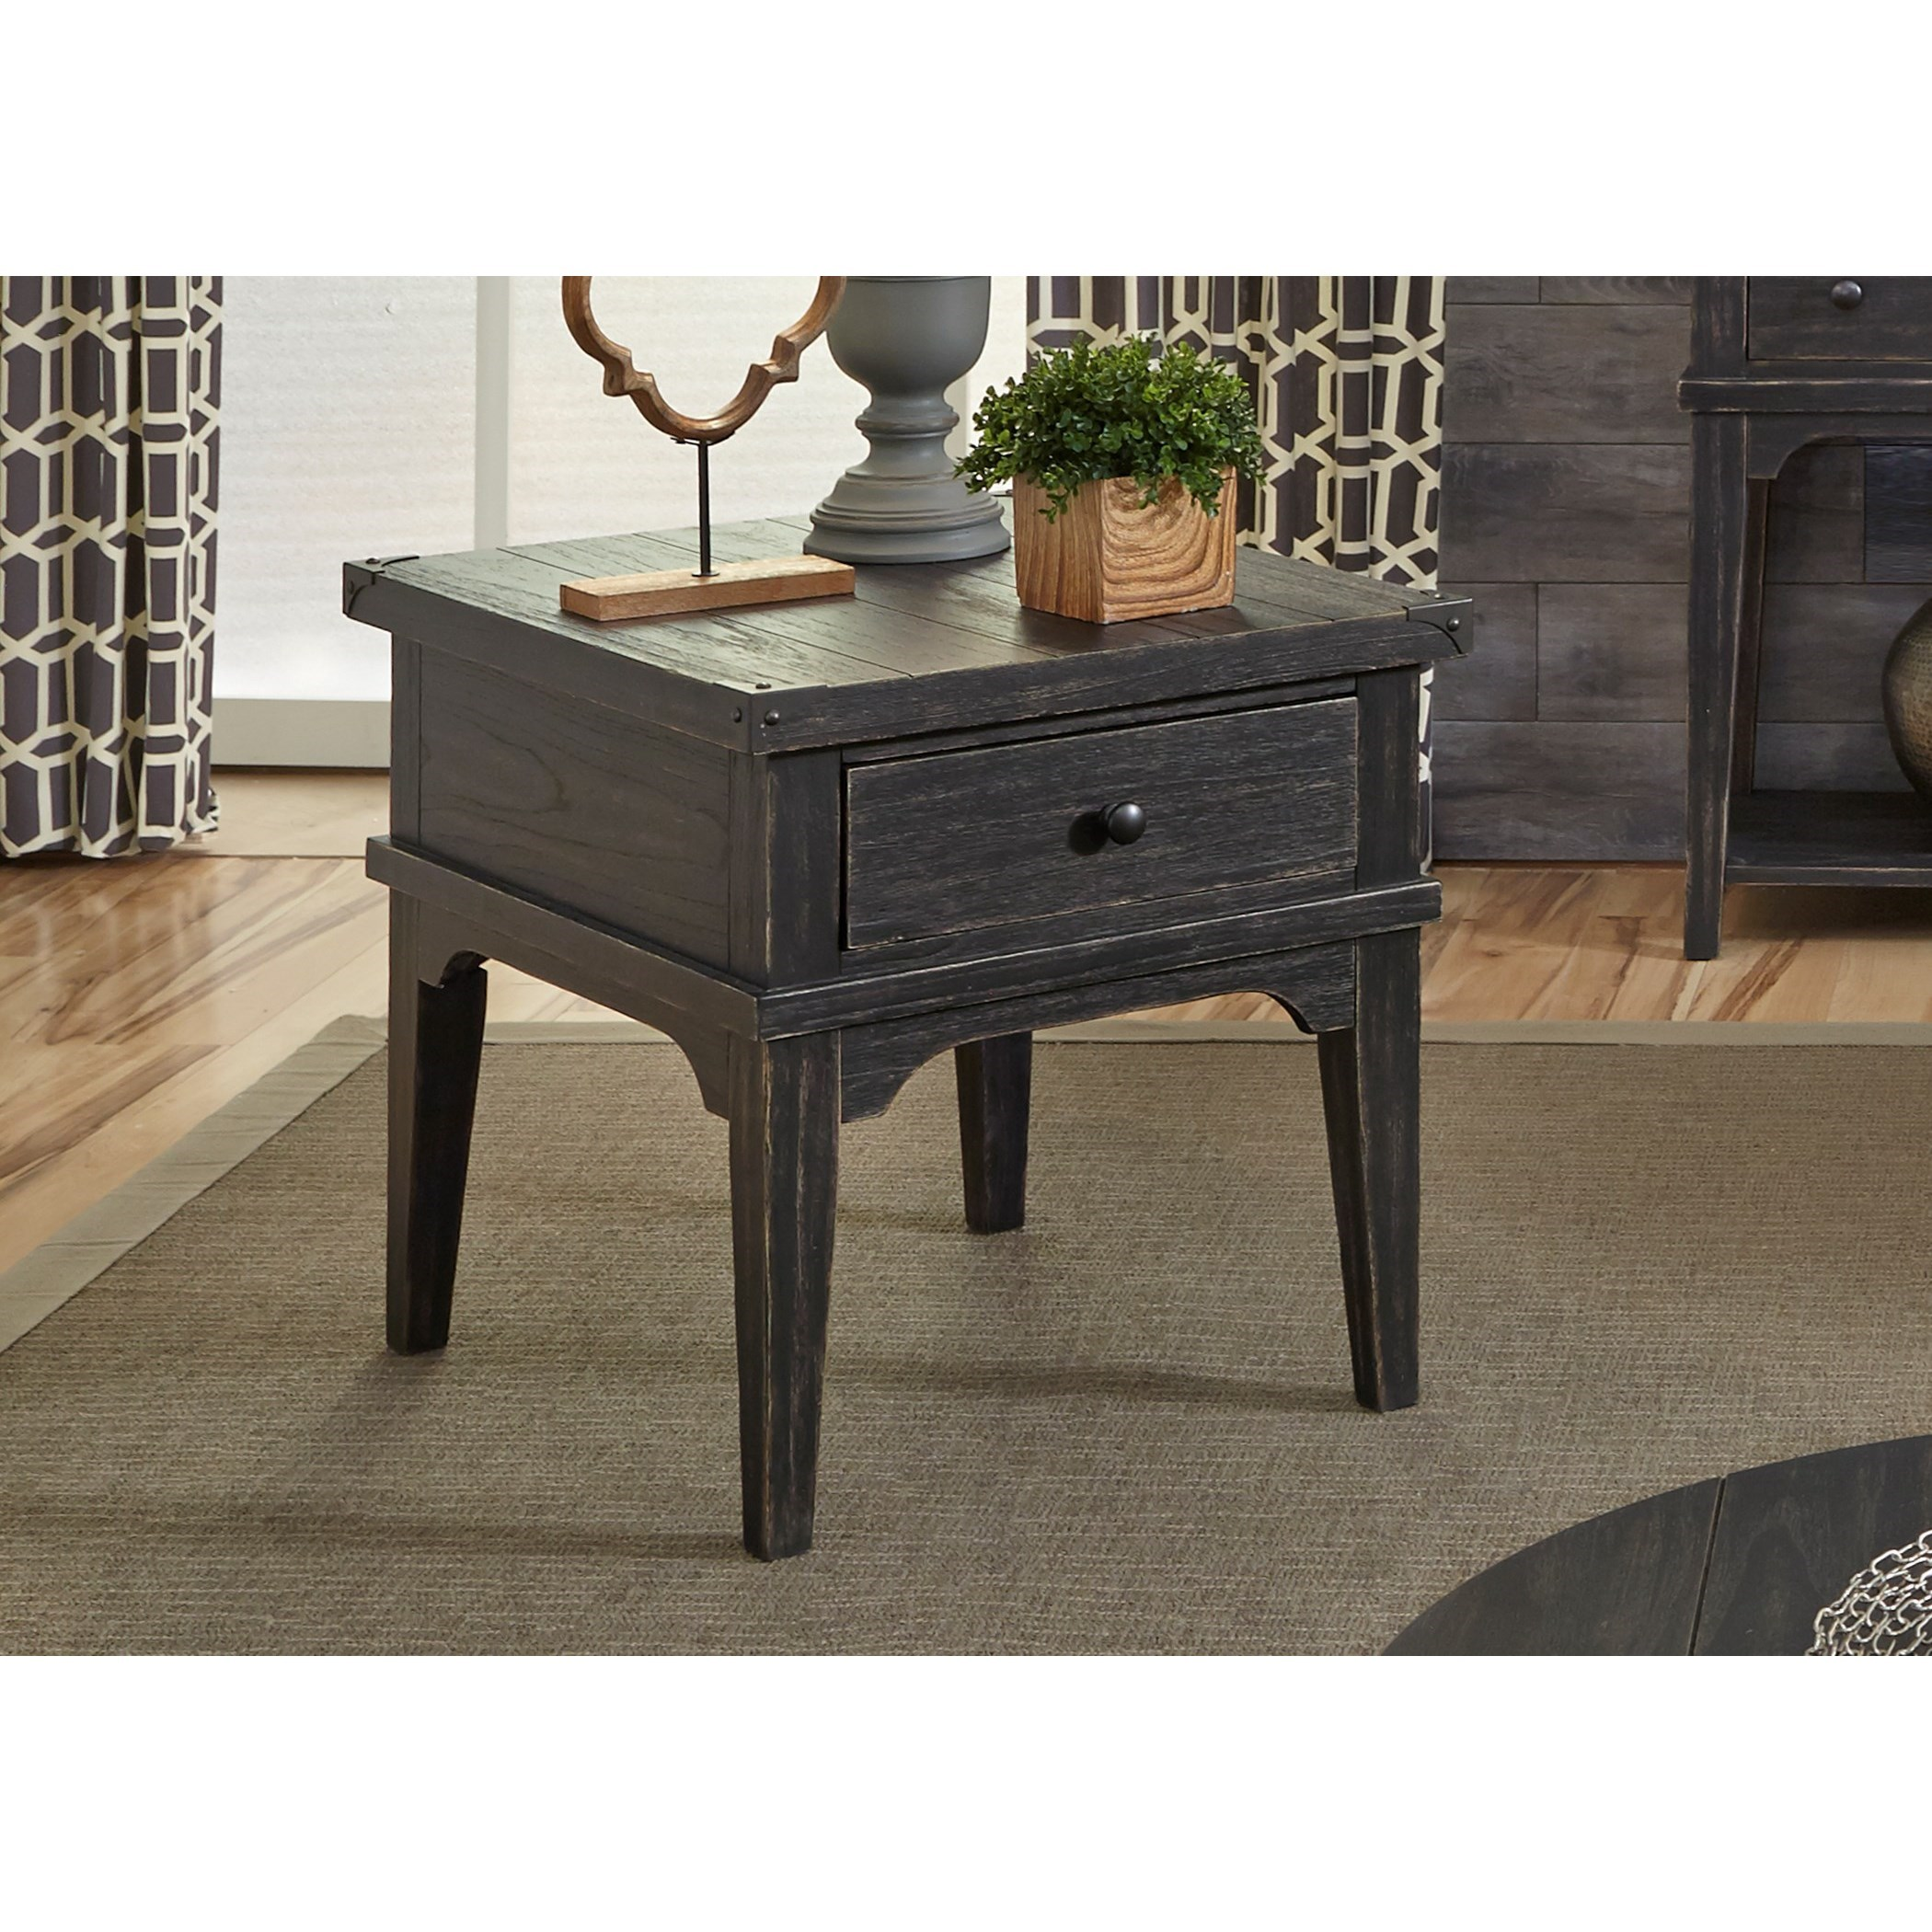 Liberty Furniture Aspen Skies End Table - Item Number: 516-OT1020